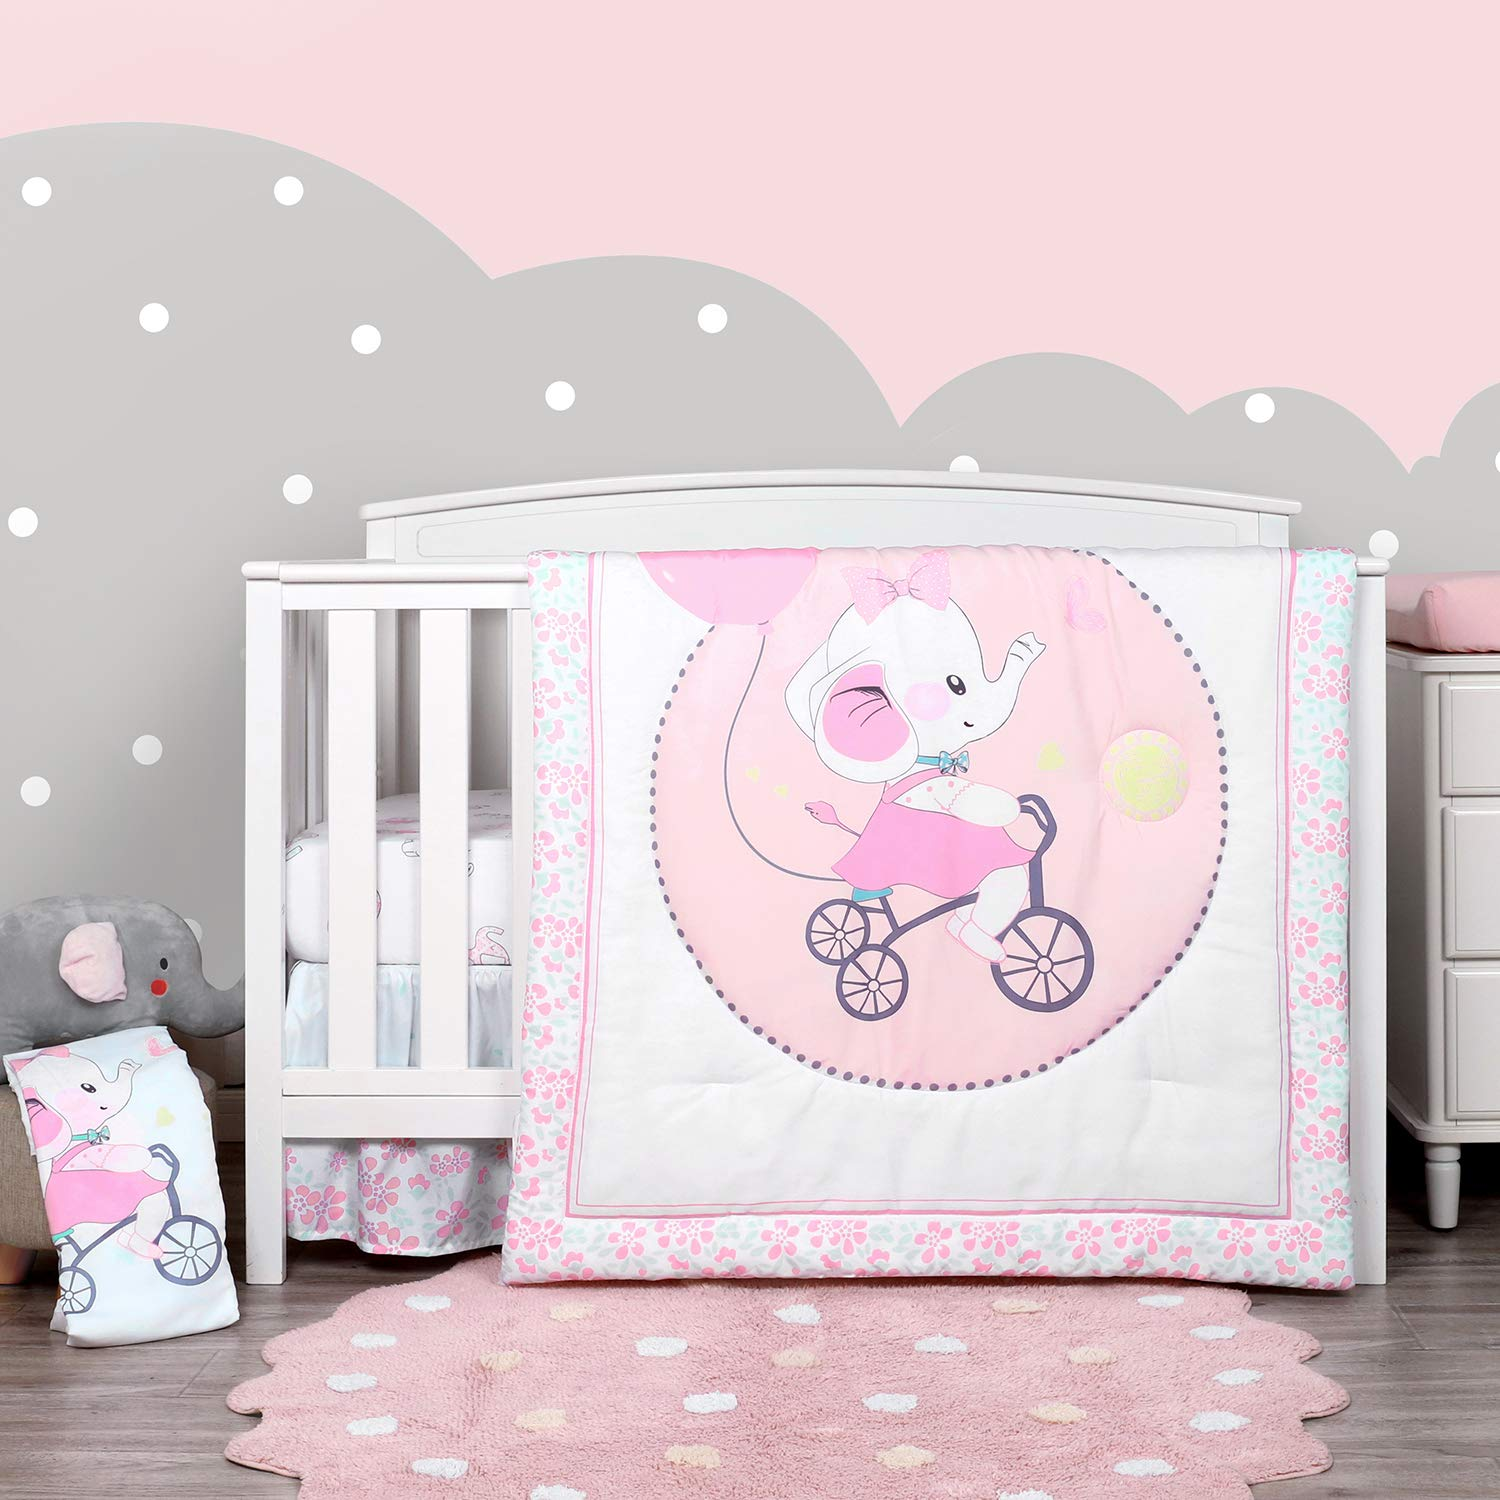 TILLYOU Luxury 4 Pieces Elephant Crib Bedding Set (Embroidered Comforter, Crib Sheets, Crib Skirt) - Microfiber Printed Nursery Bedding Set for Girls - Baby Shower Gift